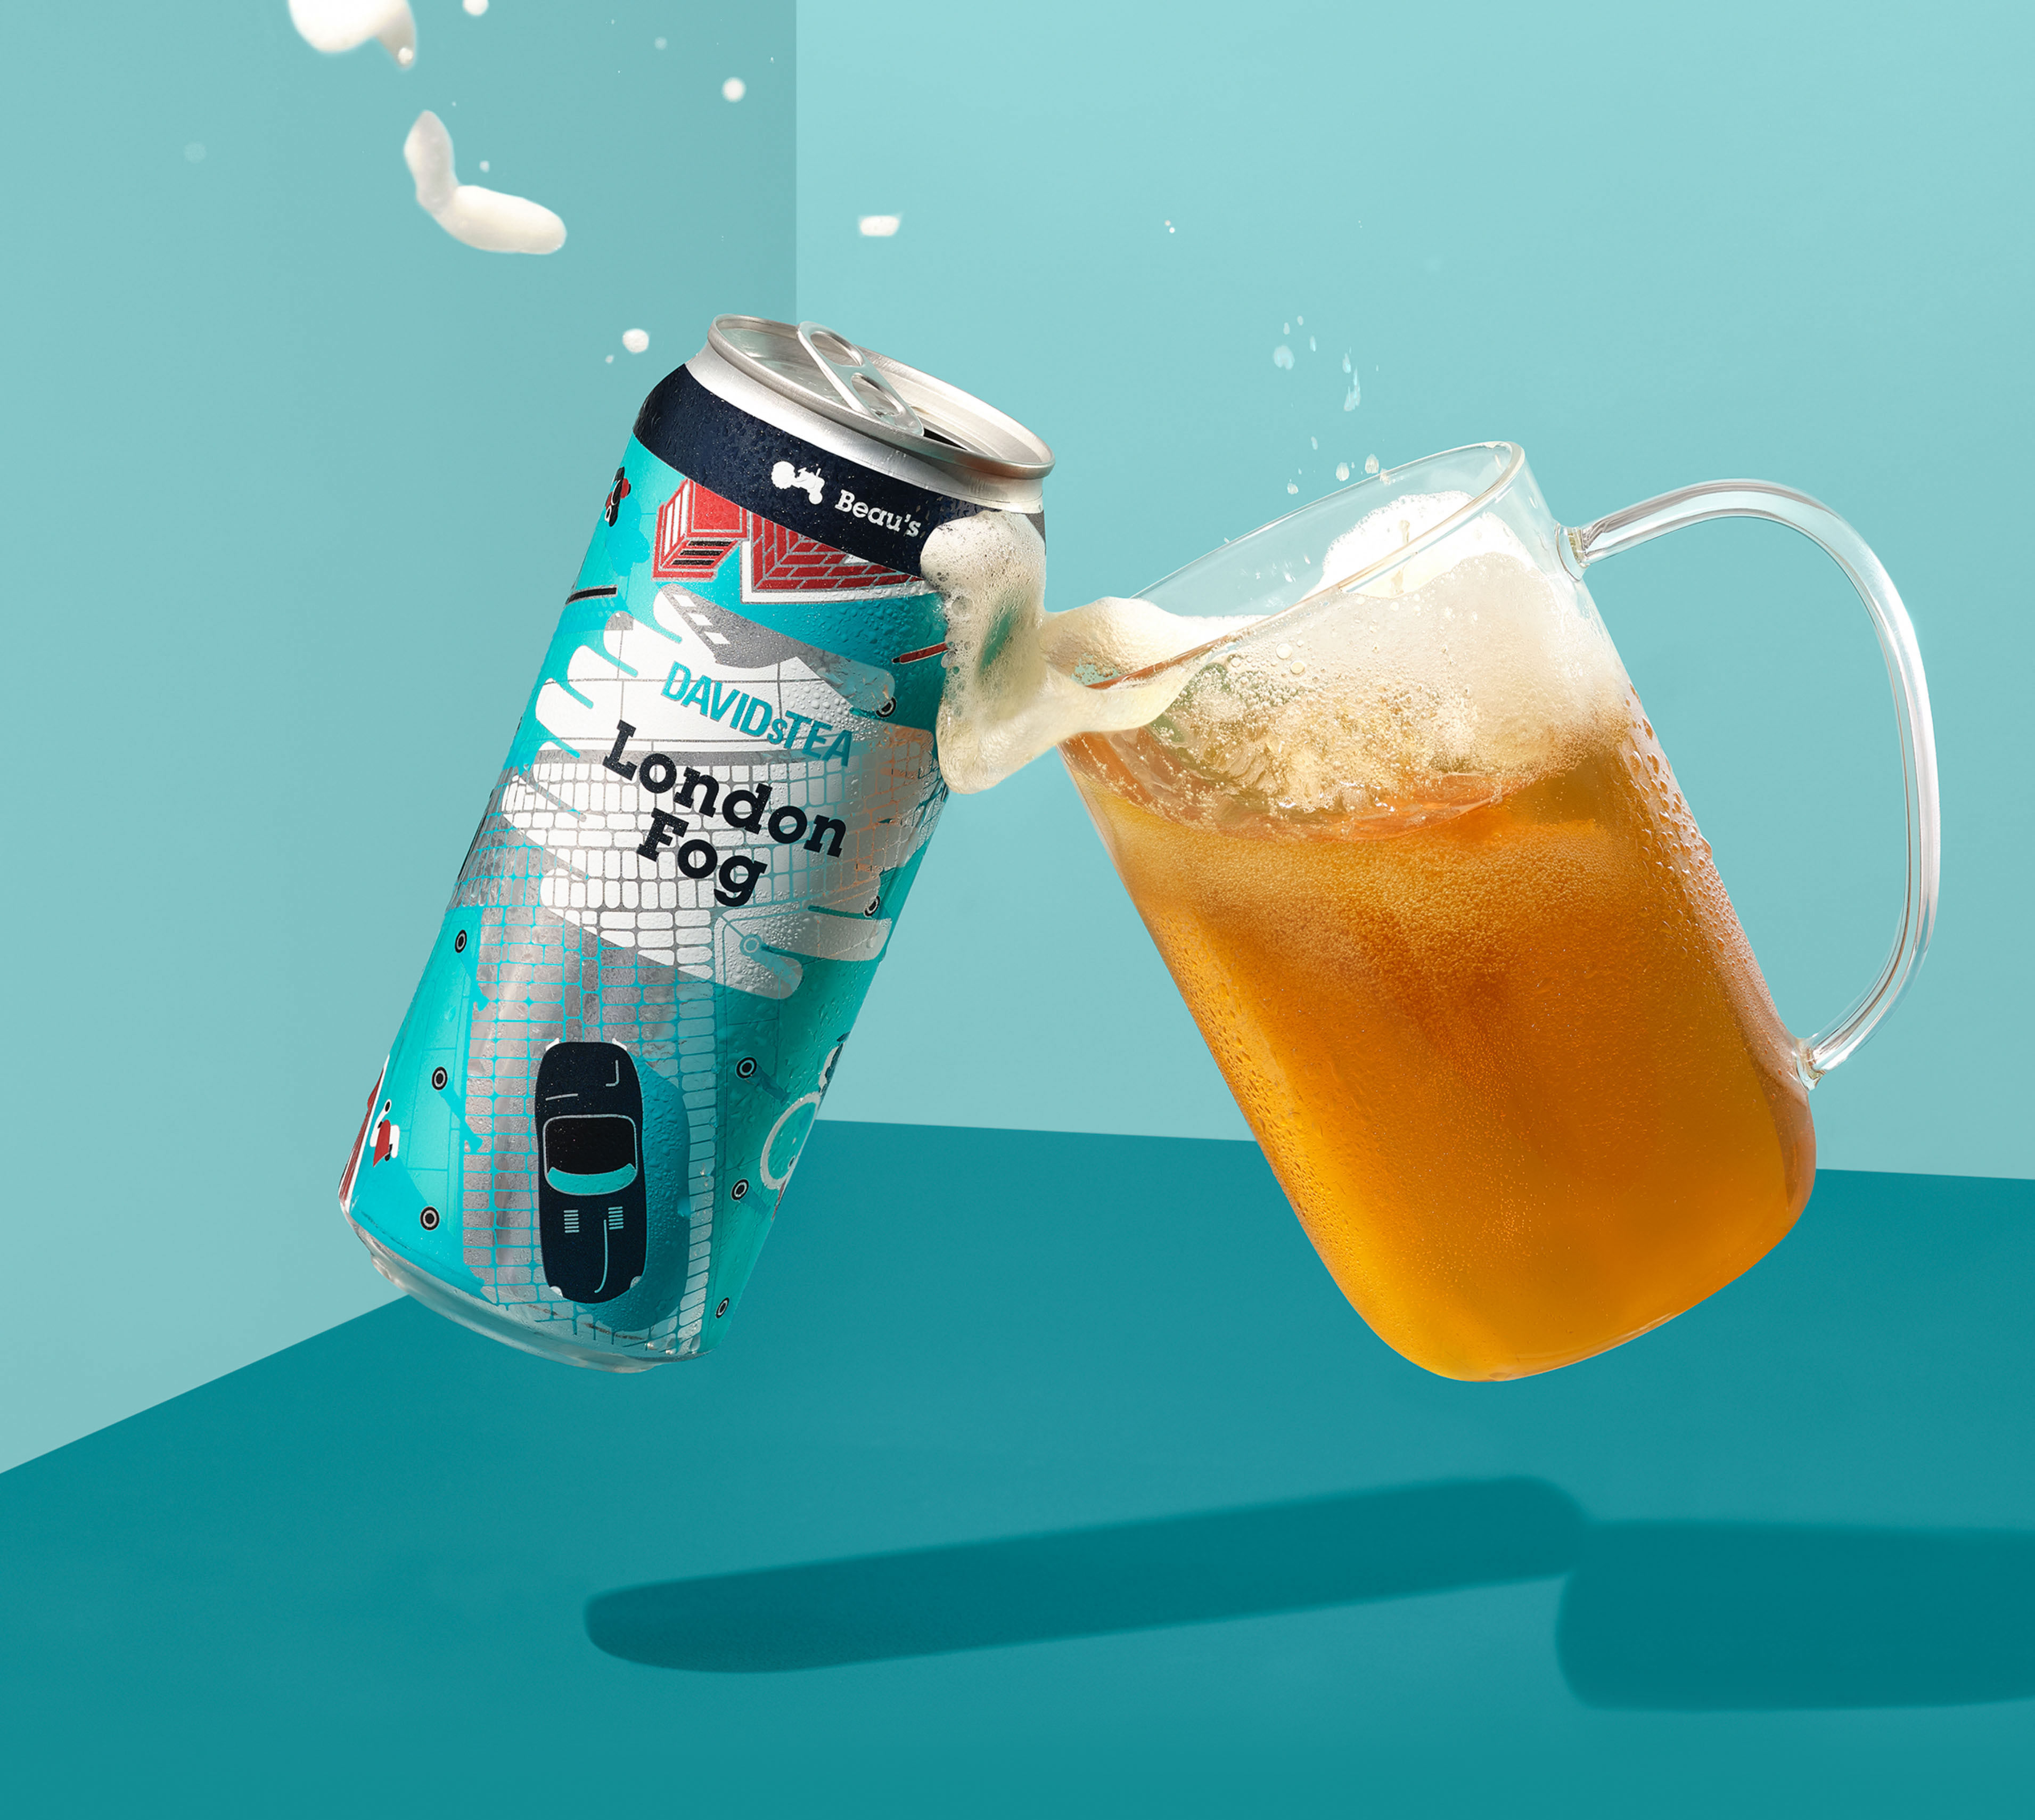 London Fog can clinking with clear mug filled with London Fog beer.